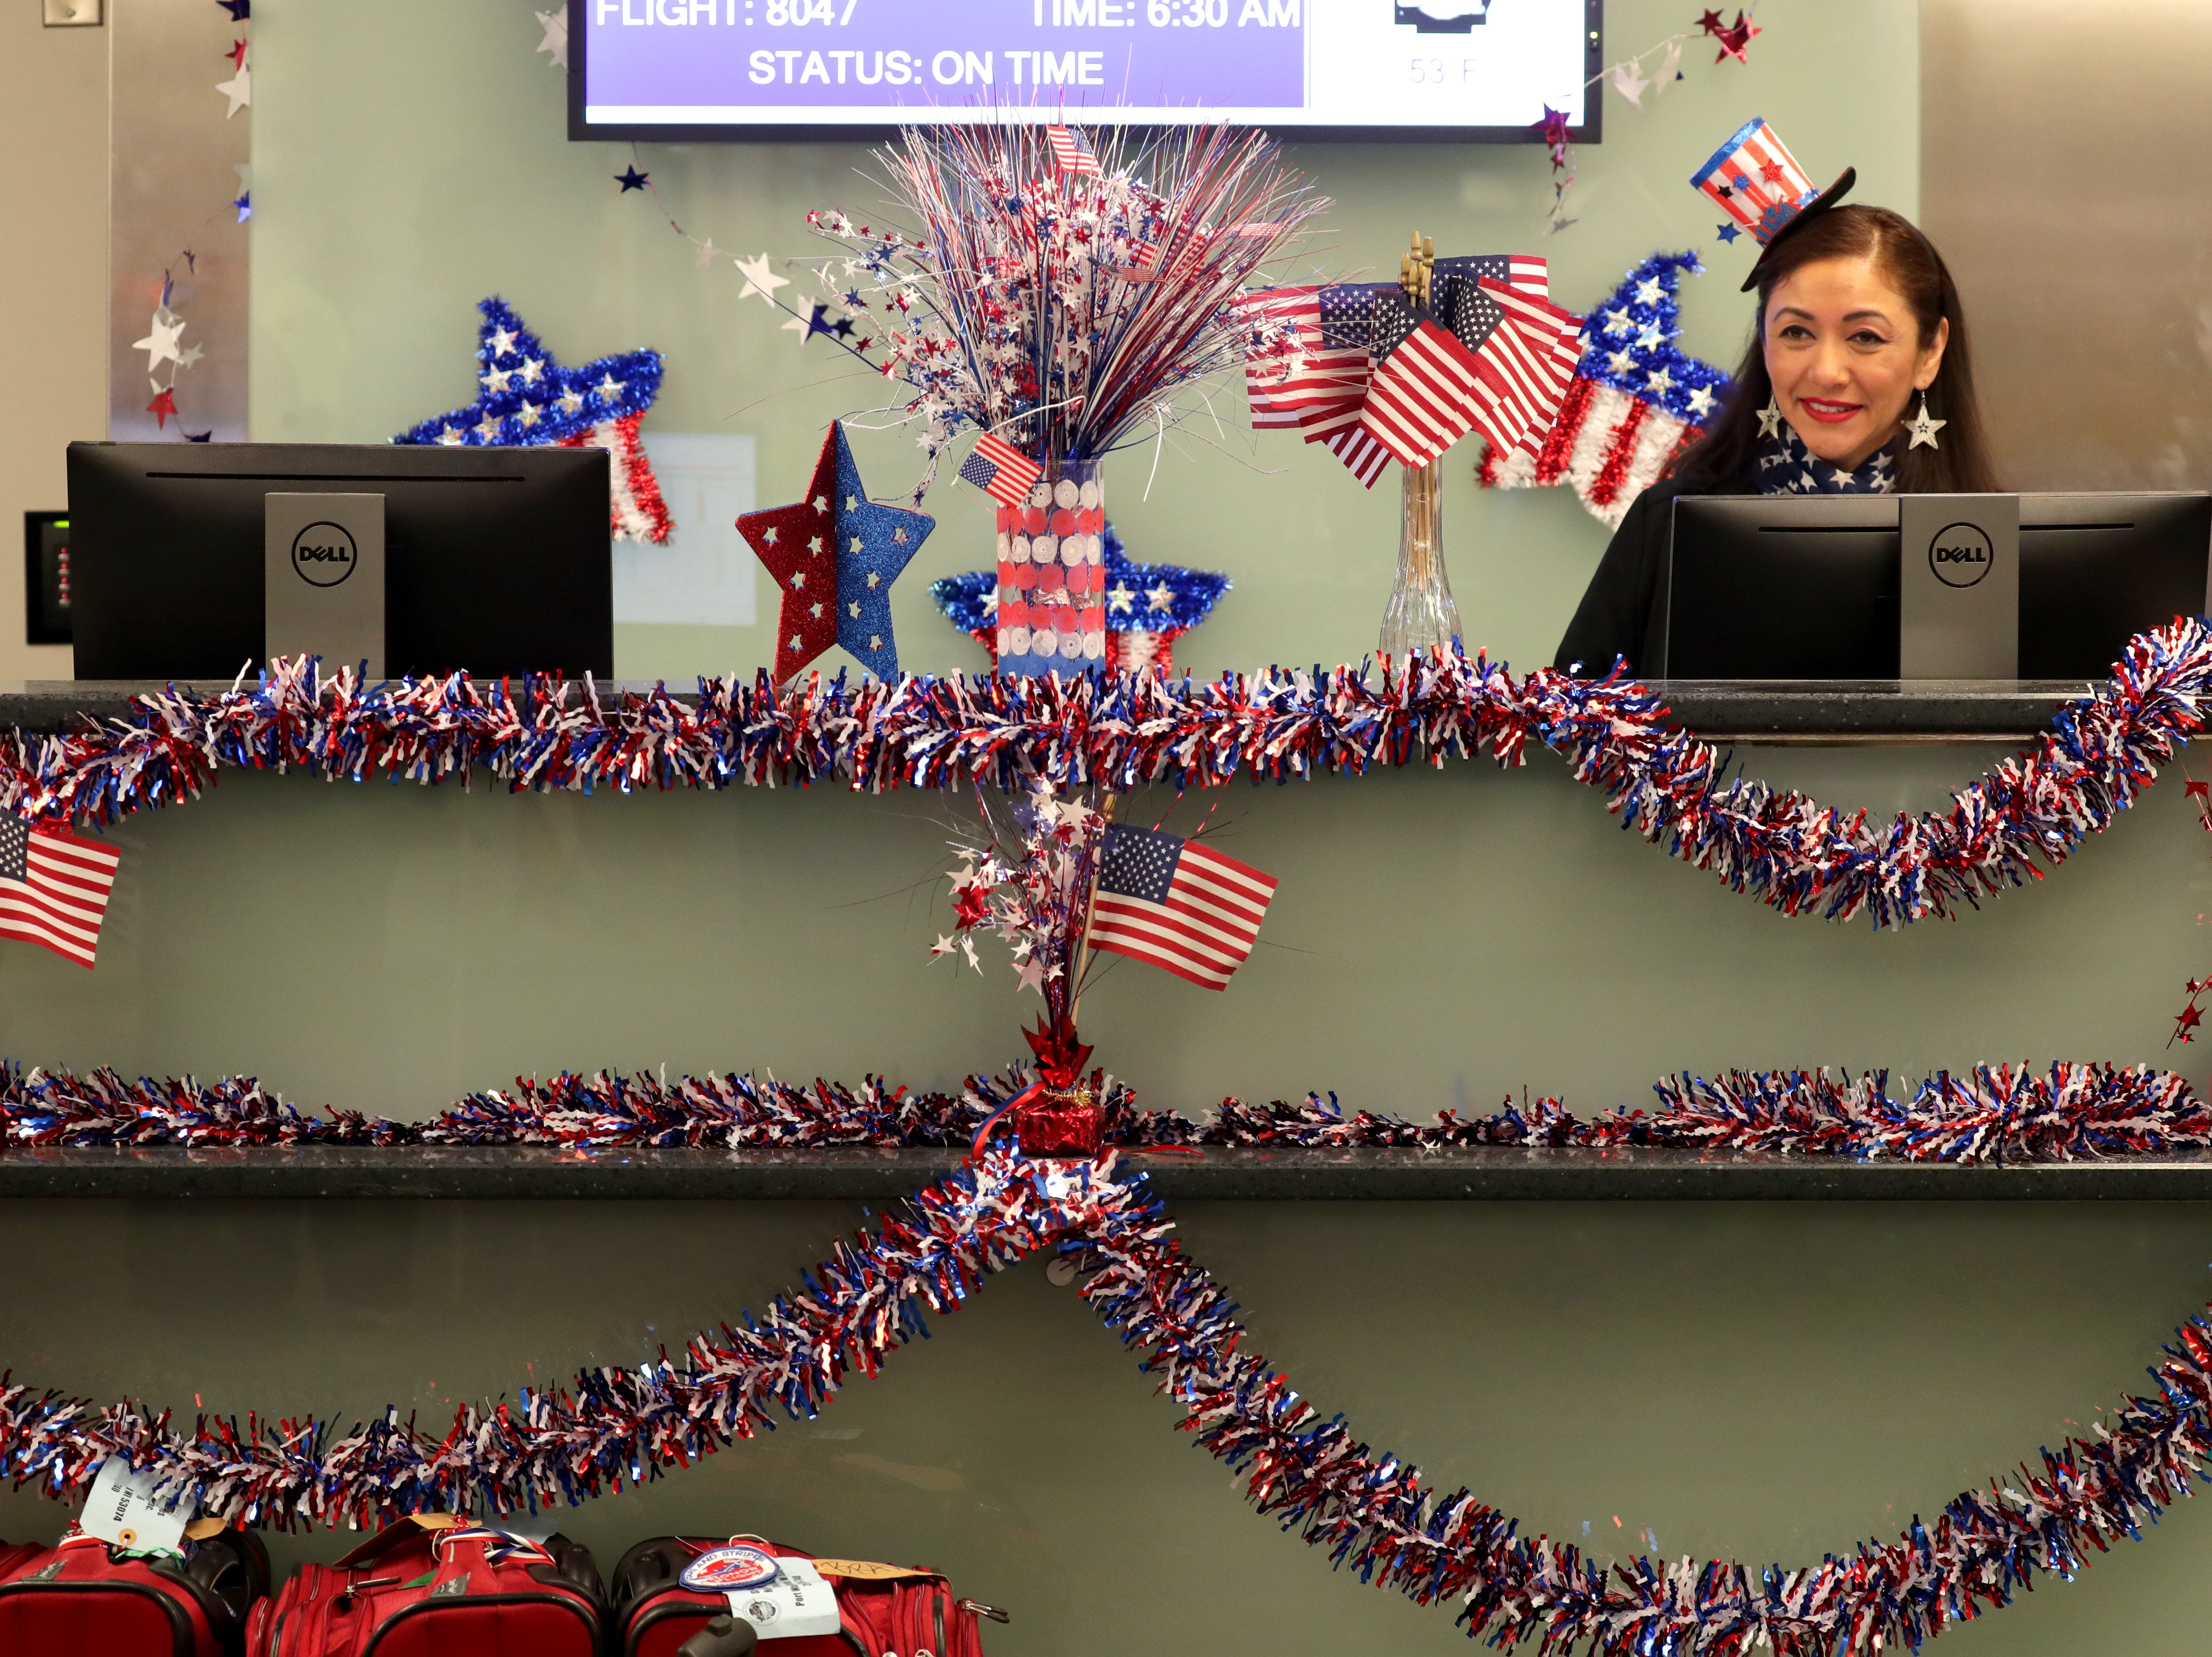 Southwest Airlines operations agent Daisy Rosas and the check-in counter are decked out in patriotic colors as she waits to check in passengers.